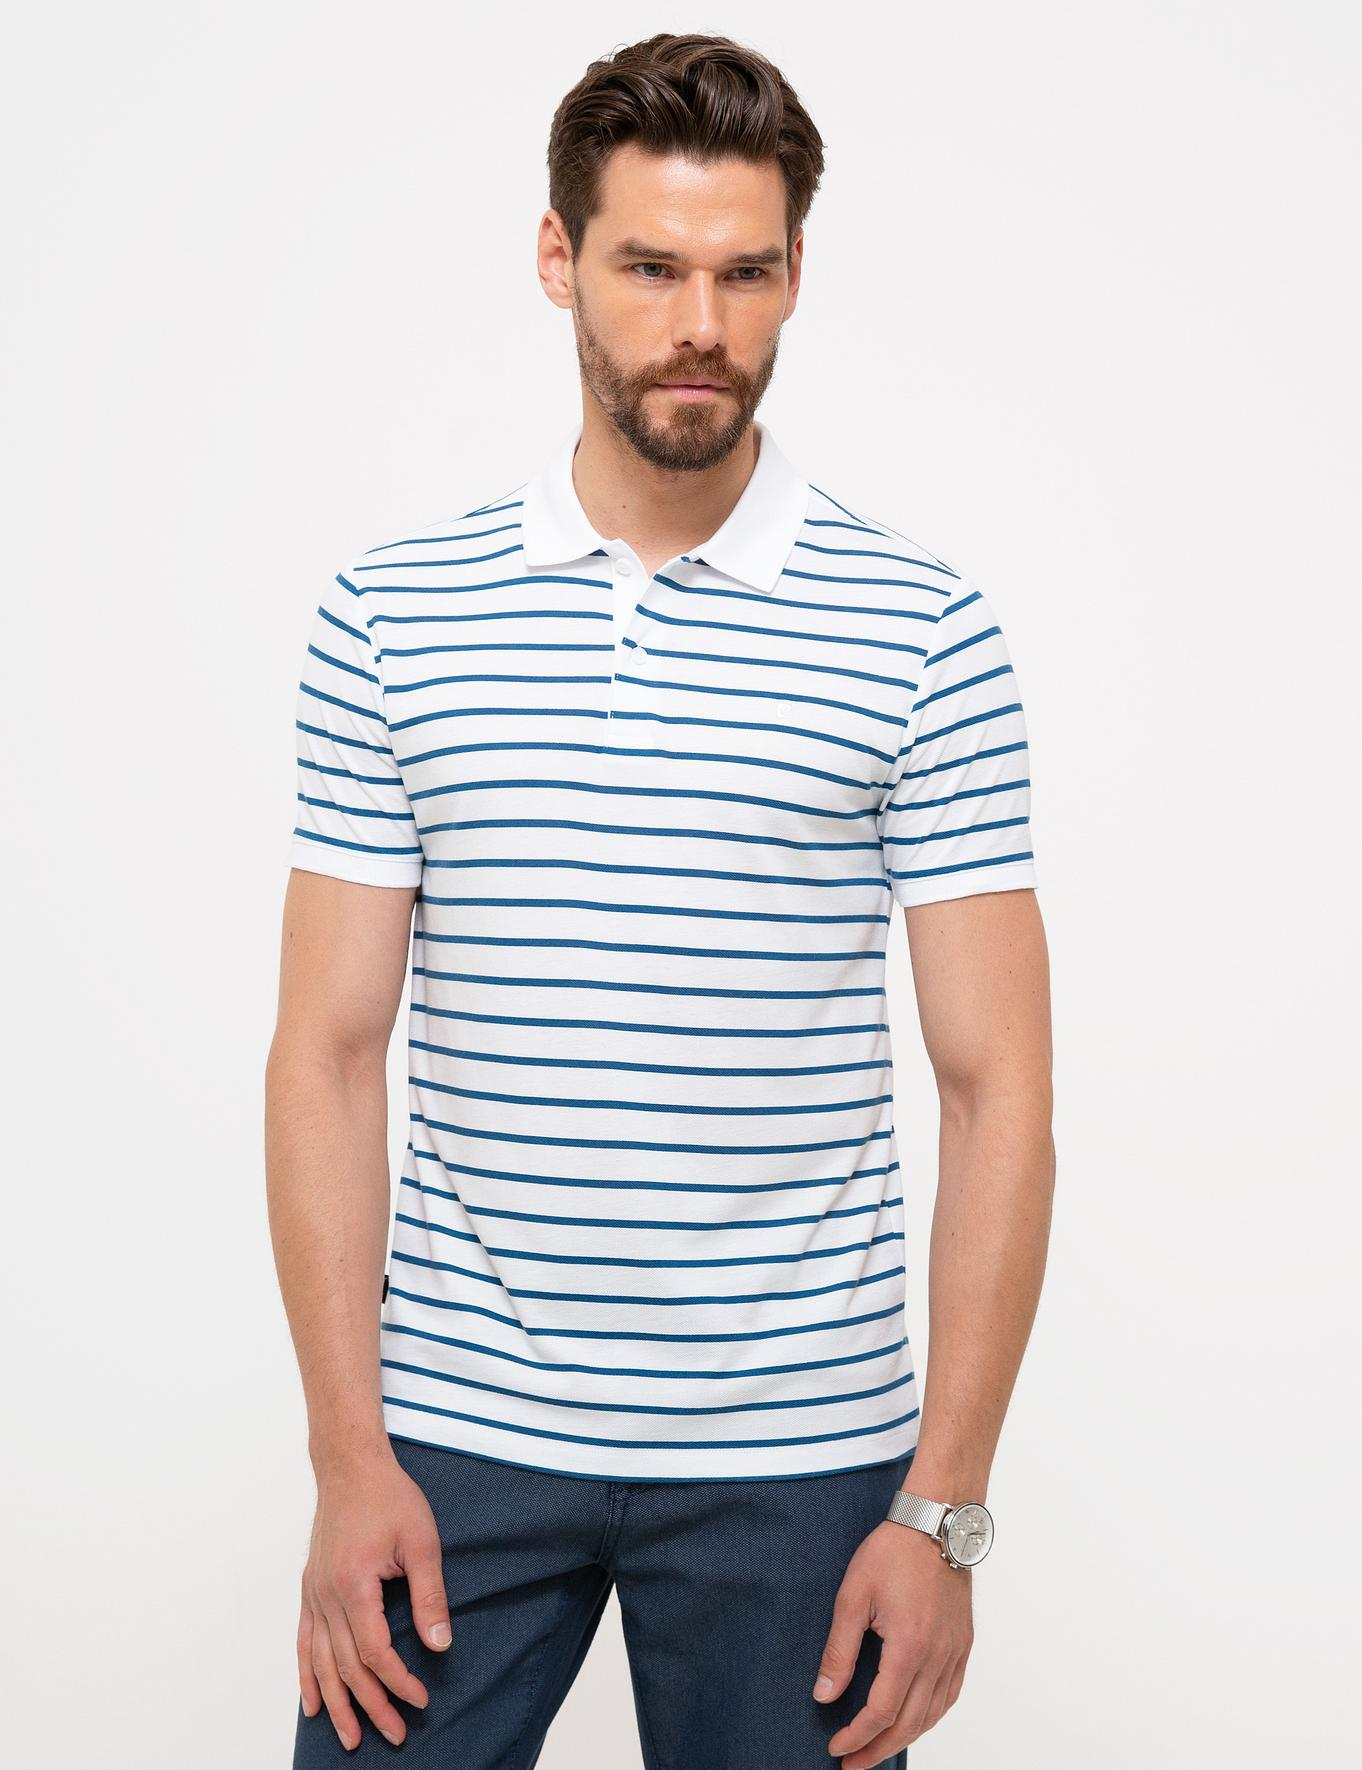 Beyaz Slim Fit Polo Yaka T-Shirt